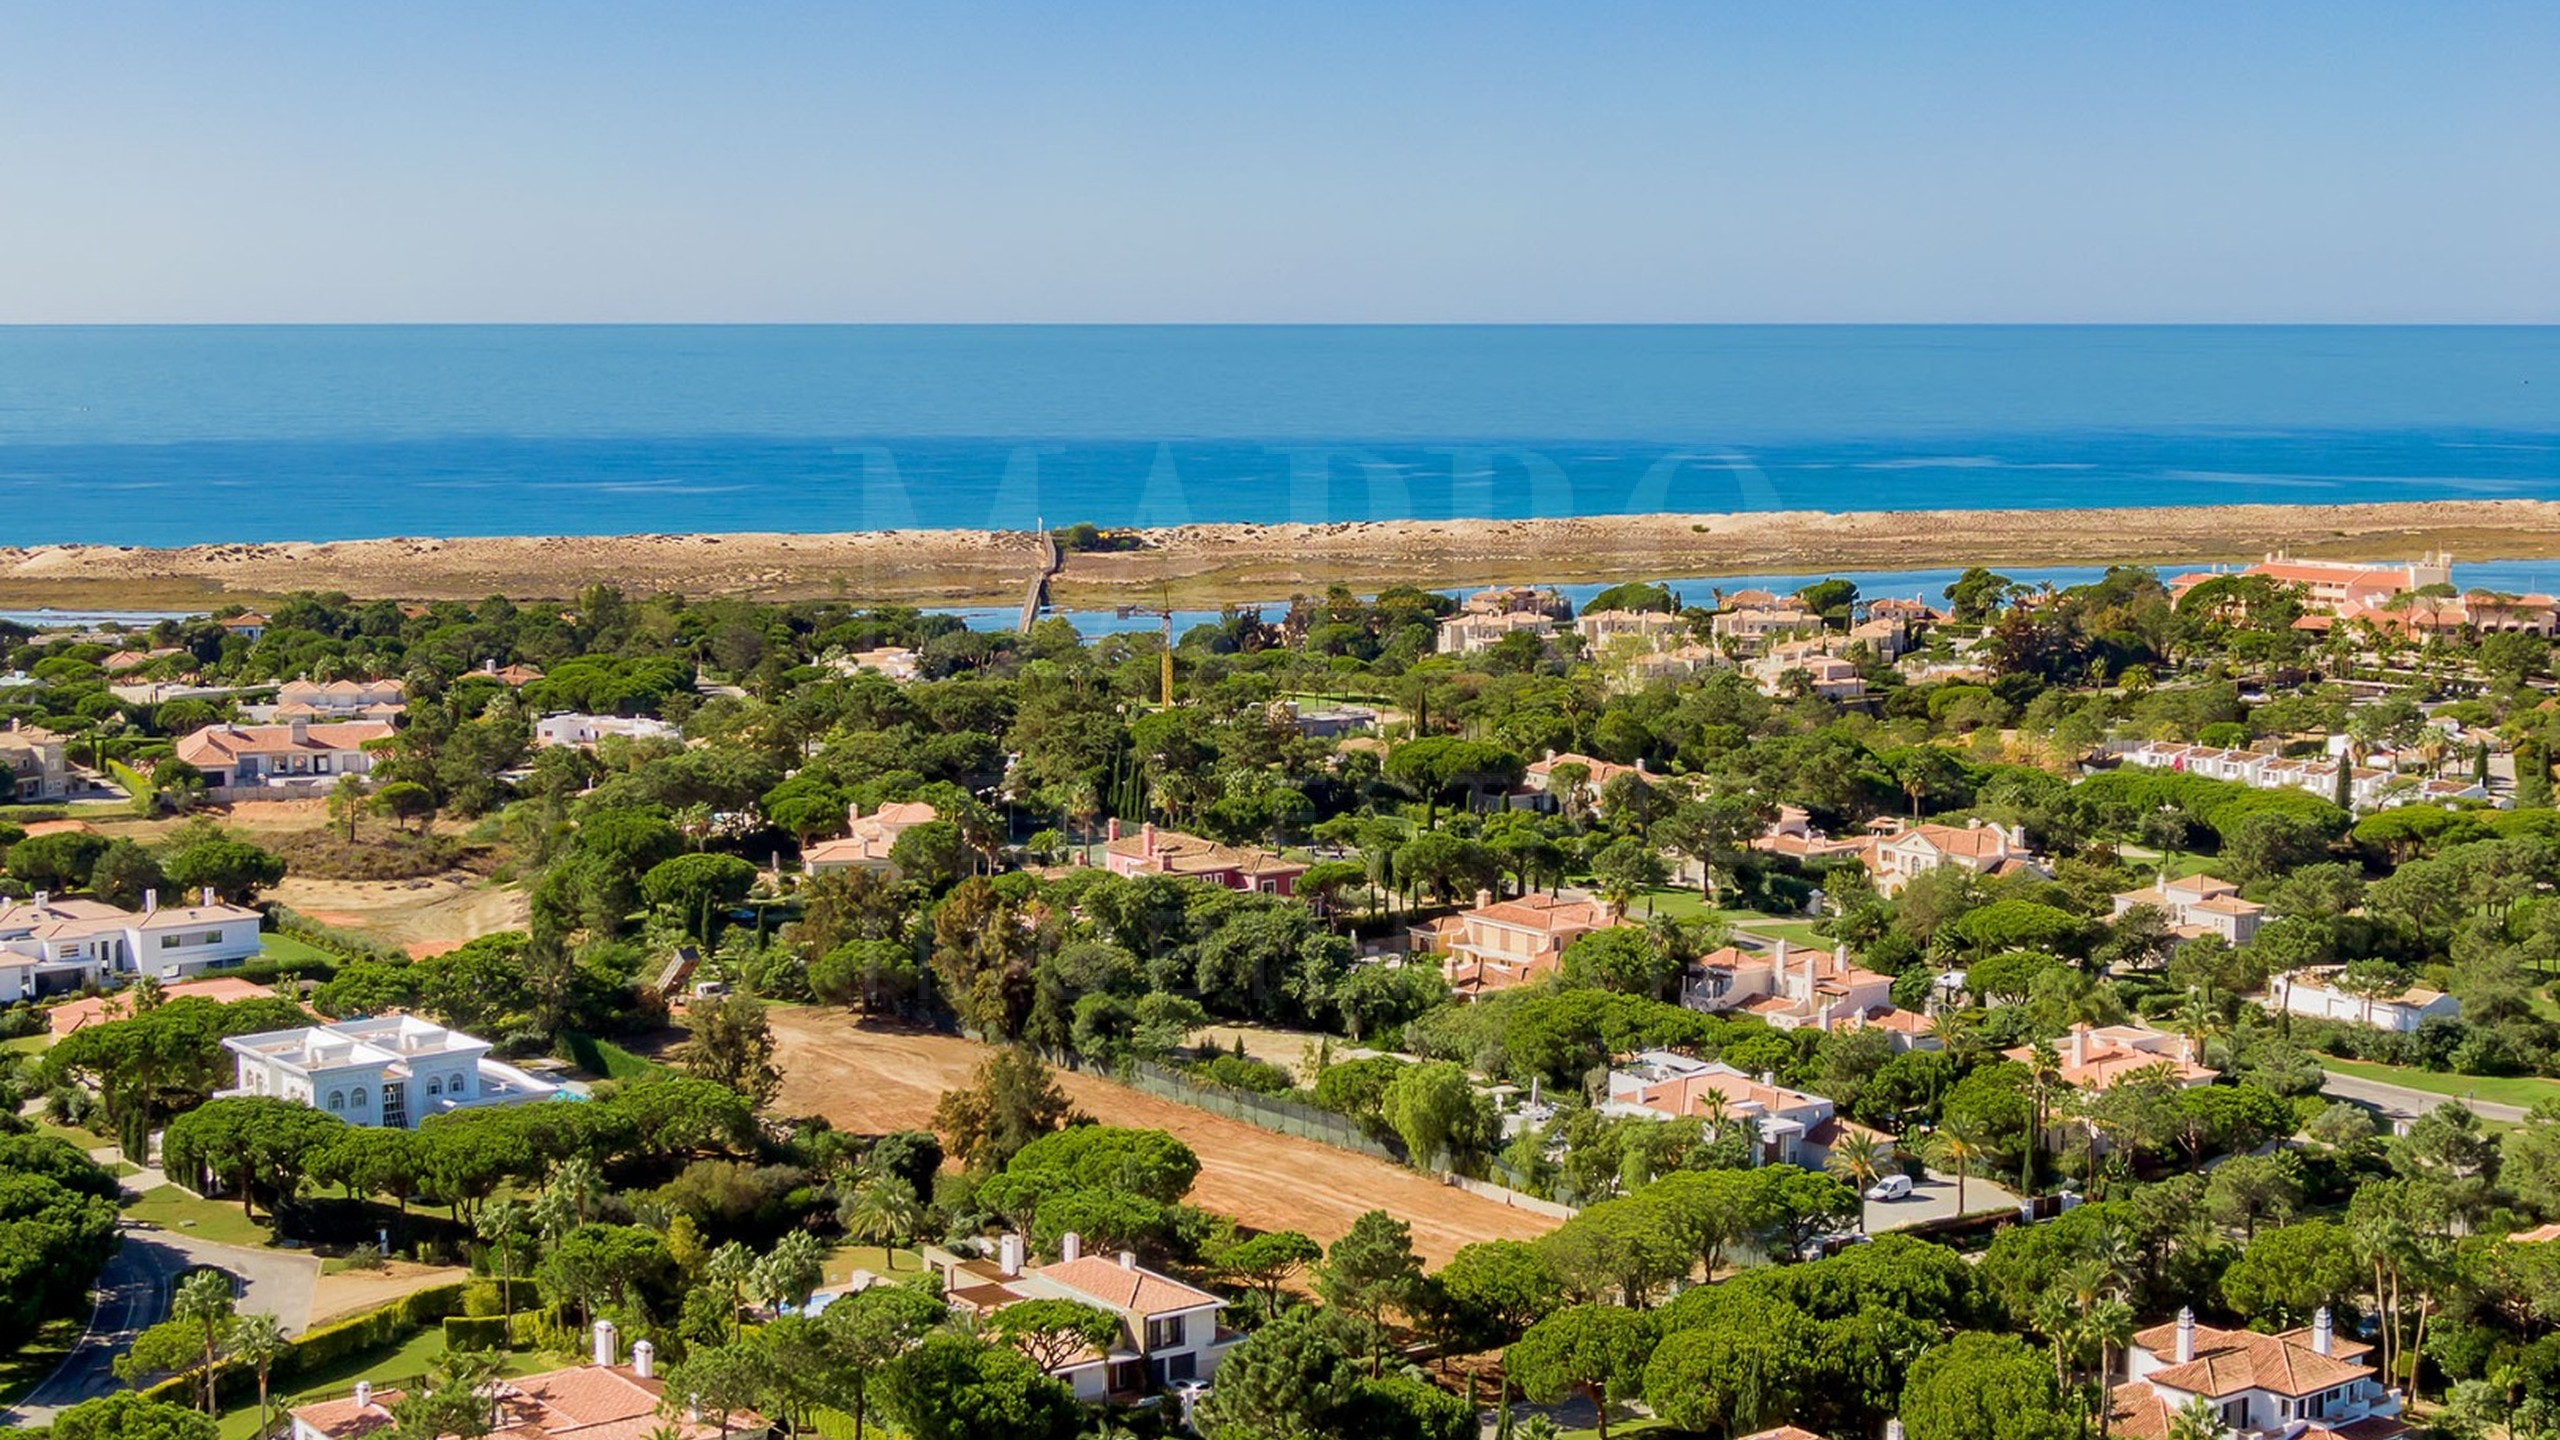 South facing plot for sale in Quinta do Lago